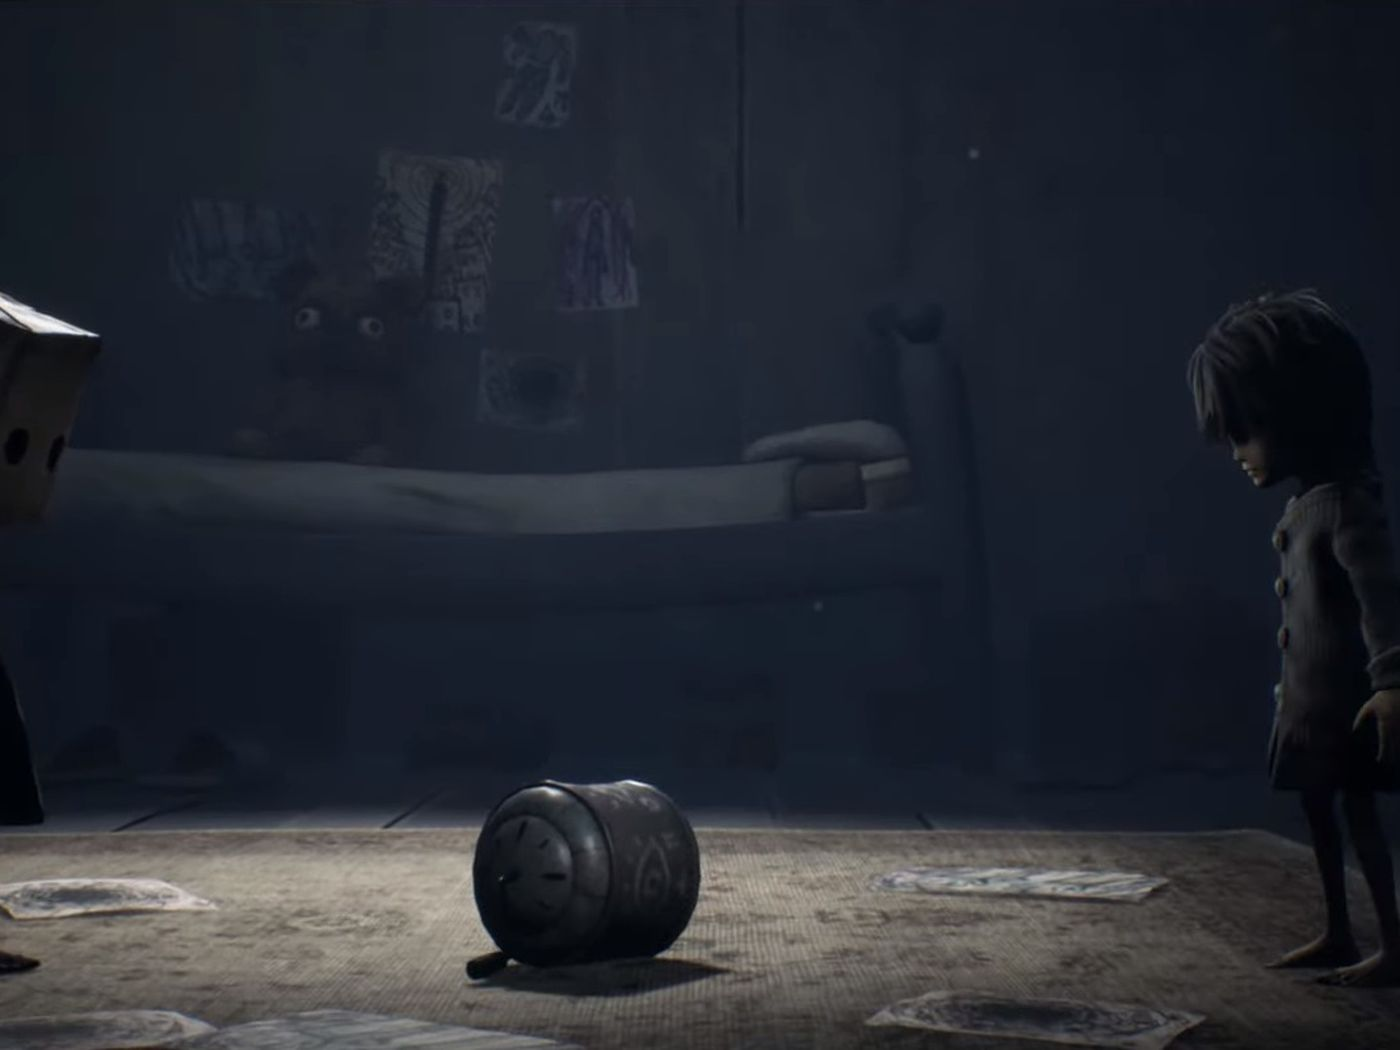 Little Nightmares 2 announced at Gamescom 2019 - Polygon